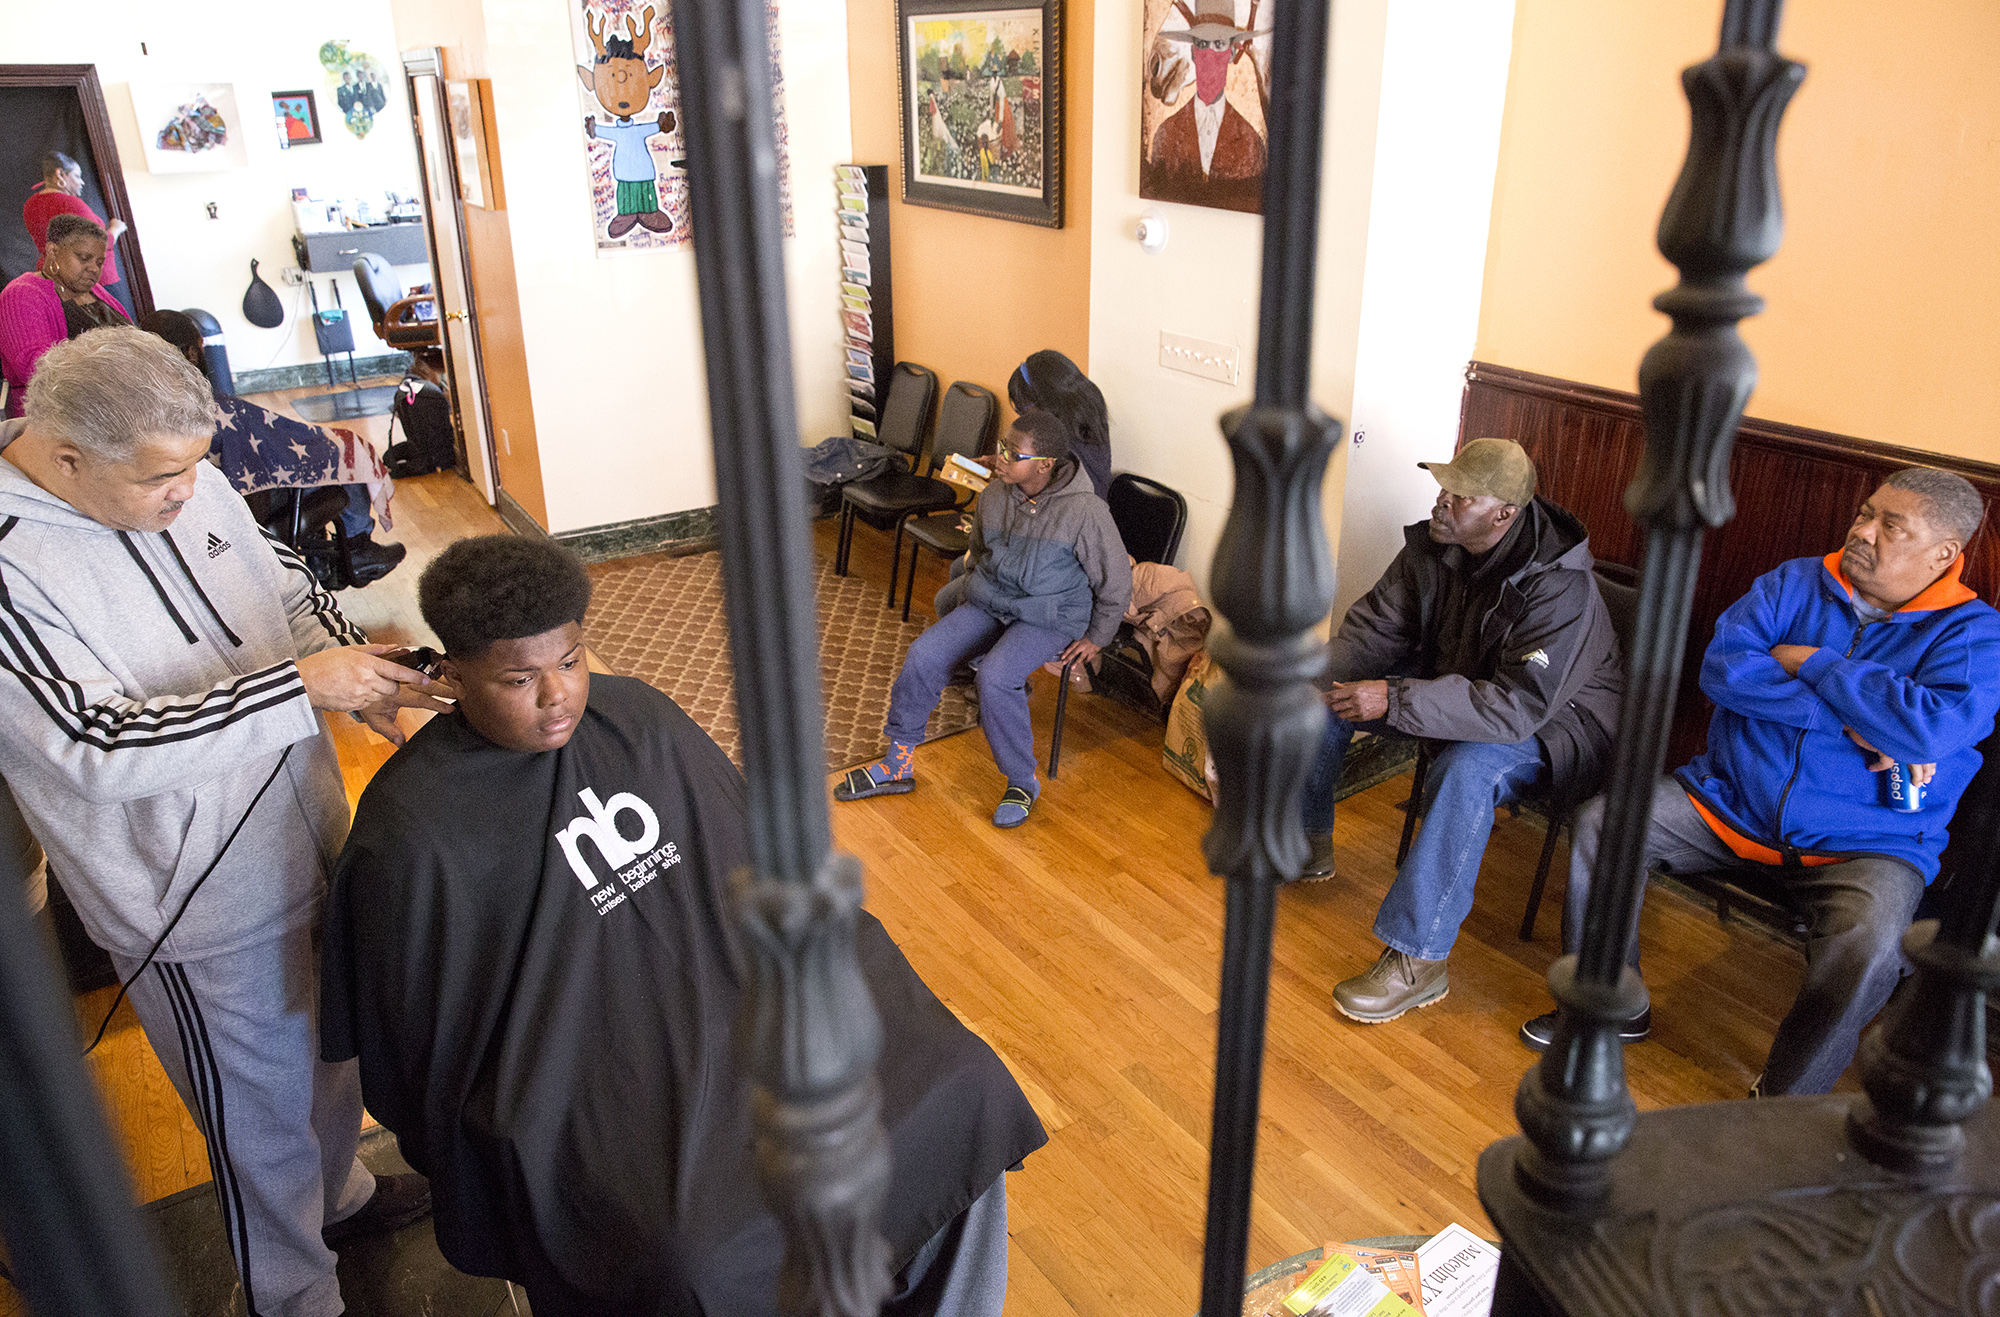 Ricky Phaison and a young customer are framed by the ornate metalwork on the spiral staircase at New Beginnings Unisex Barbershop. Photo by Antonella Crescimbeni